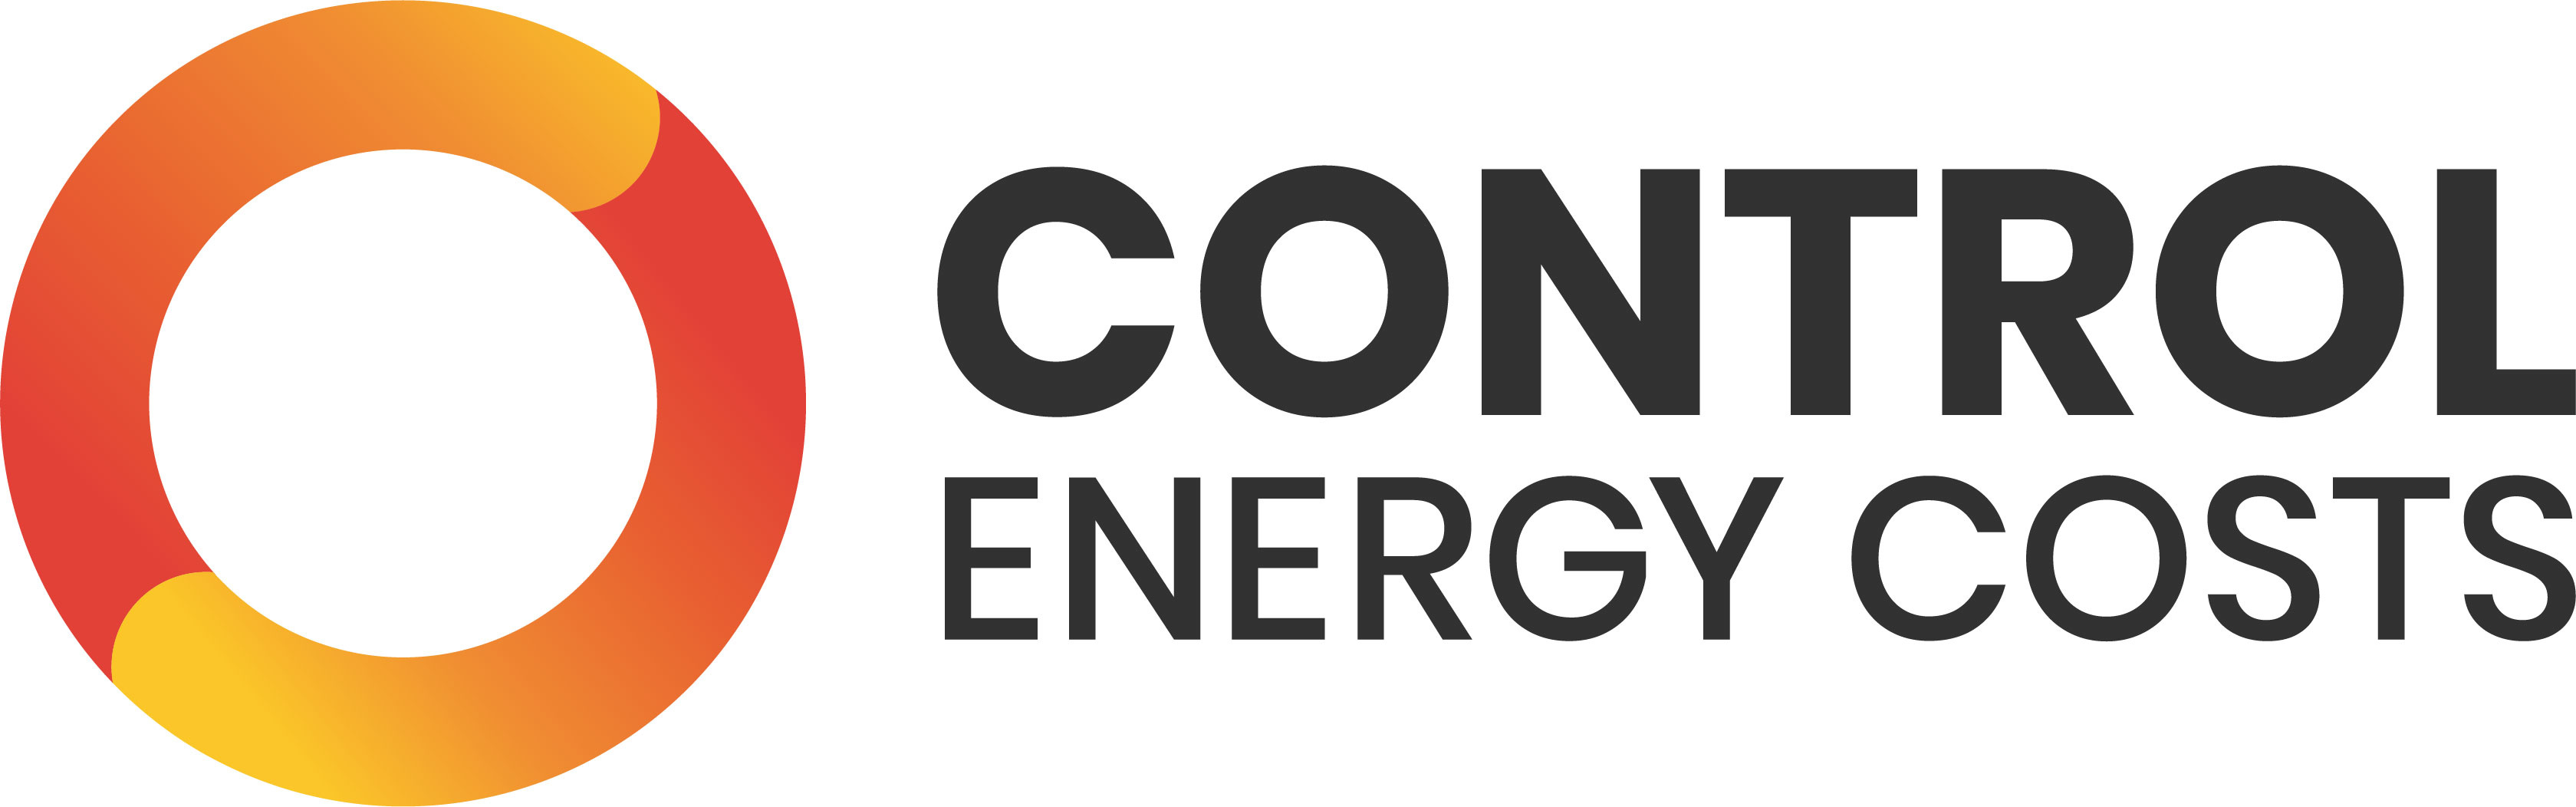 control_energy_costs_3359_01